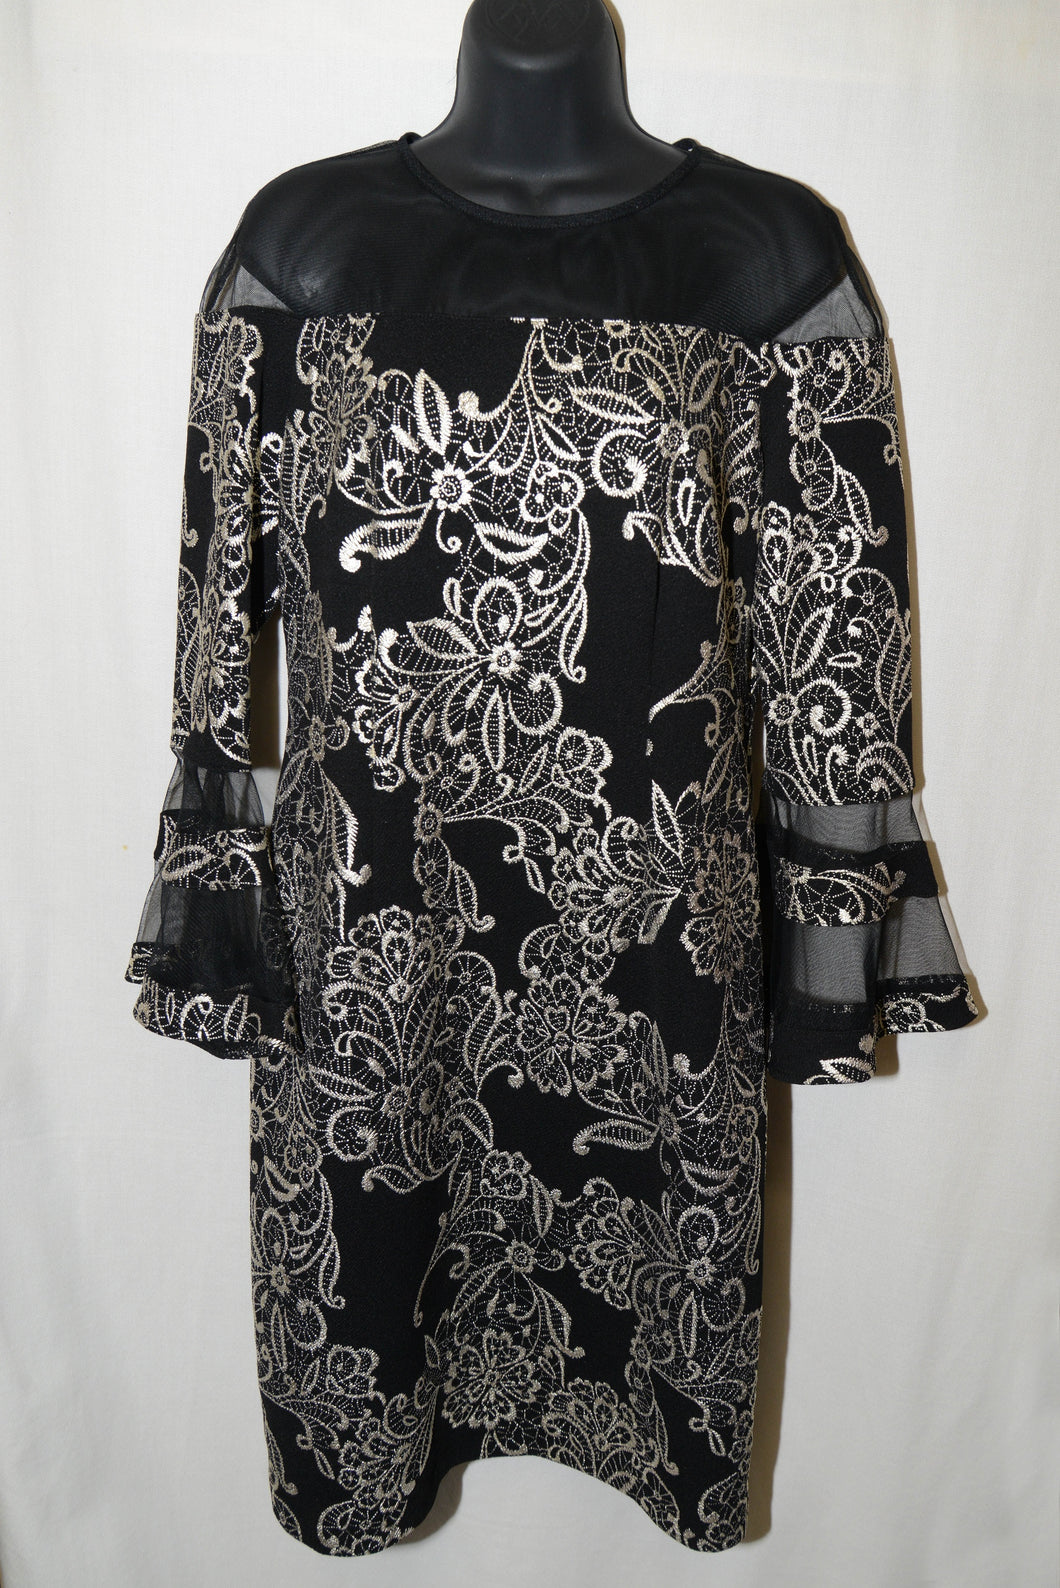 SALE - Joseph Ribkoff Dress